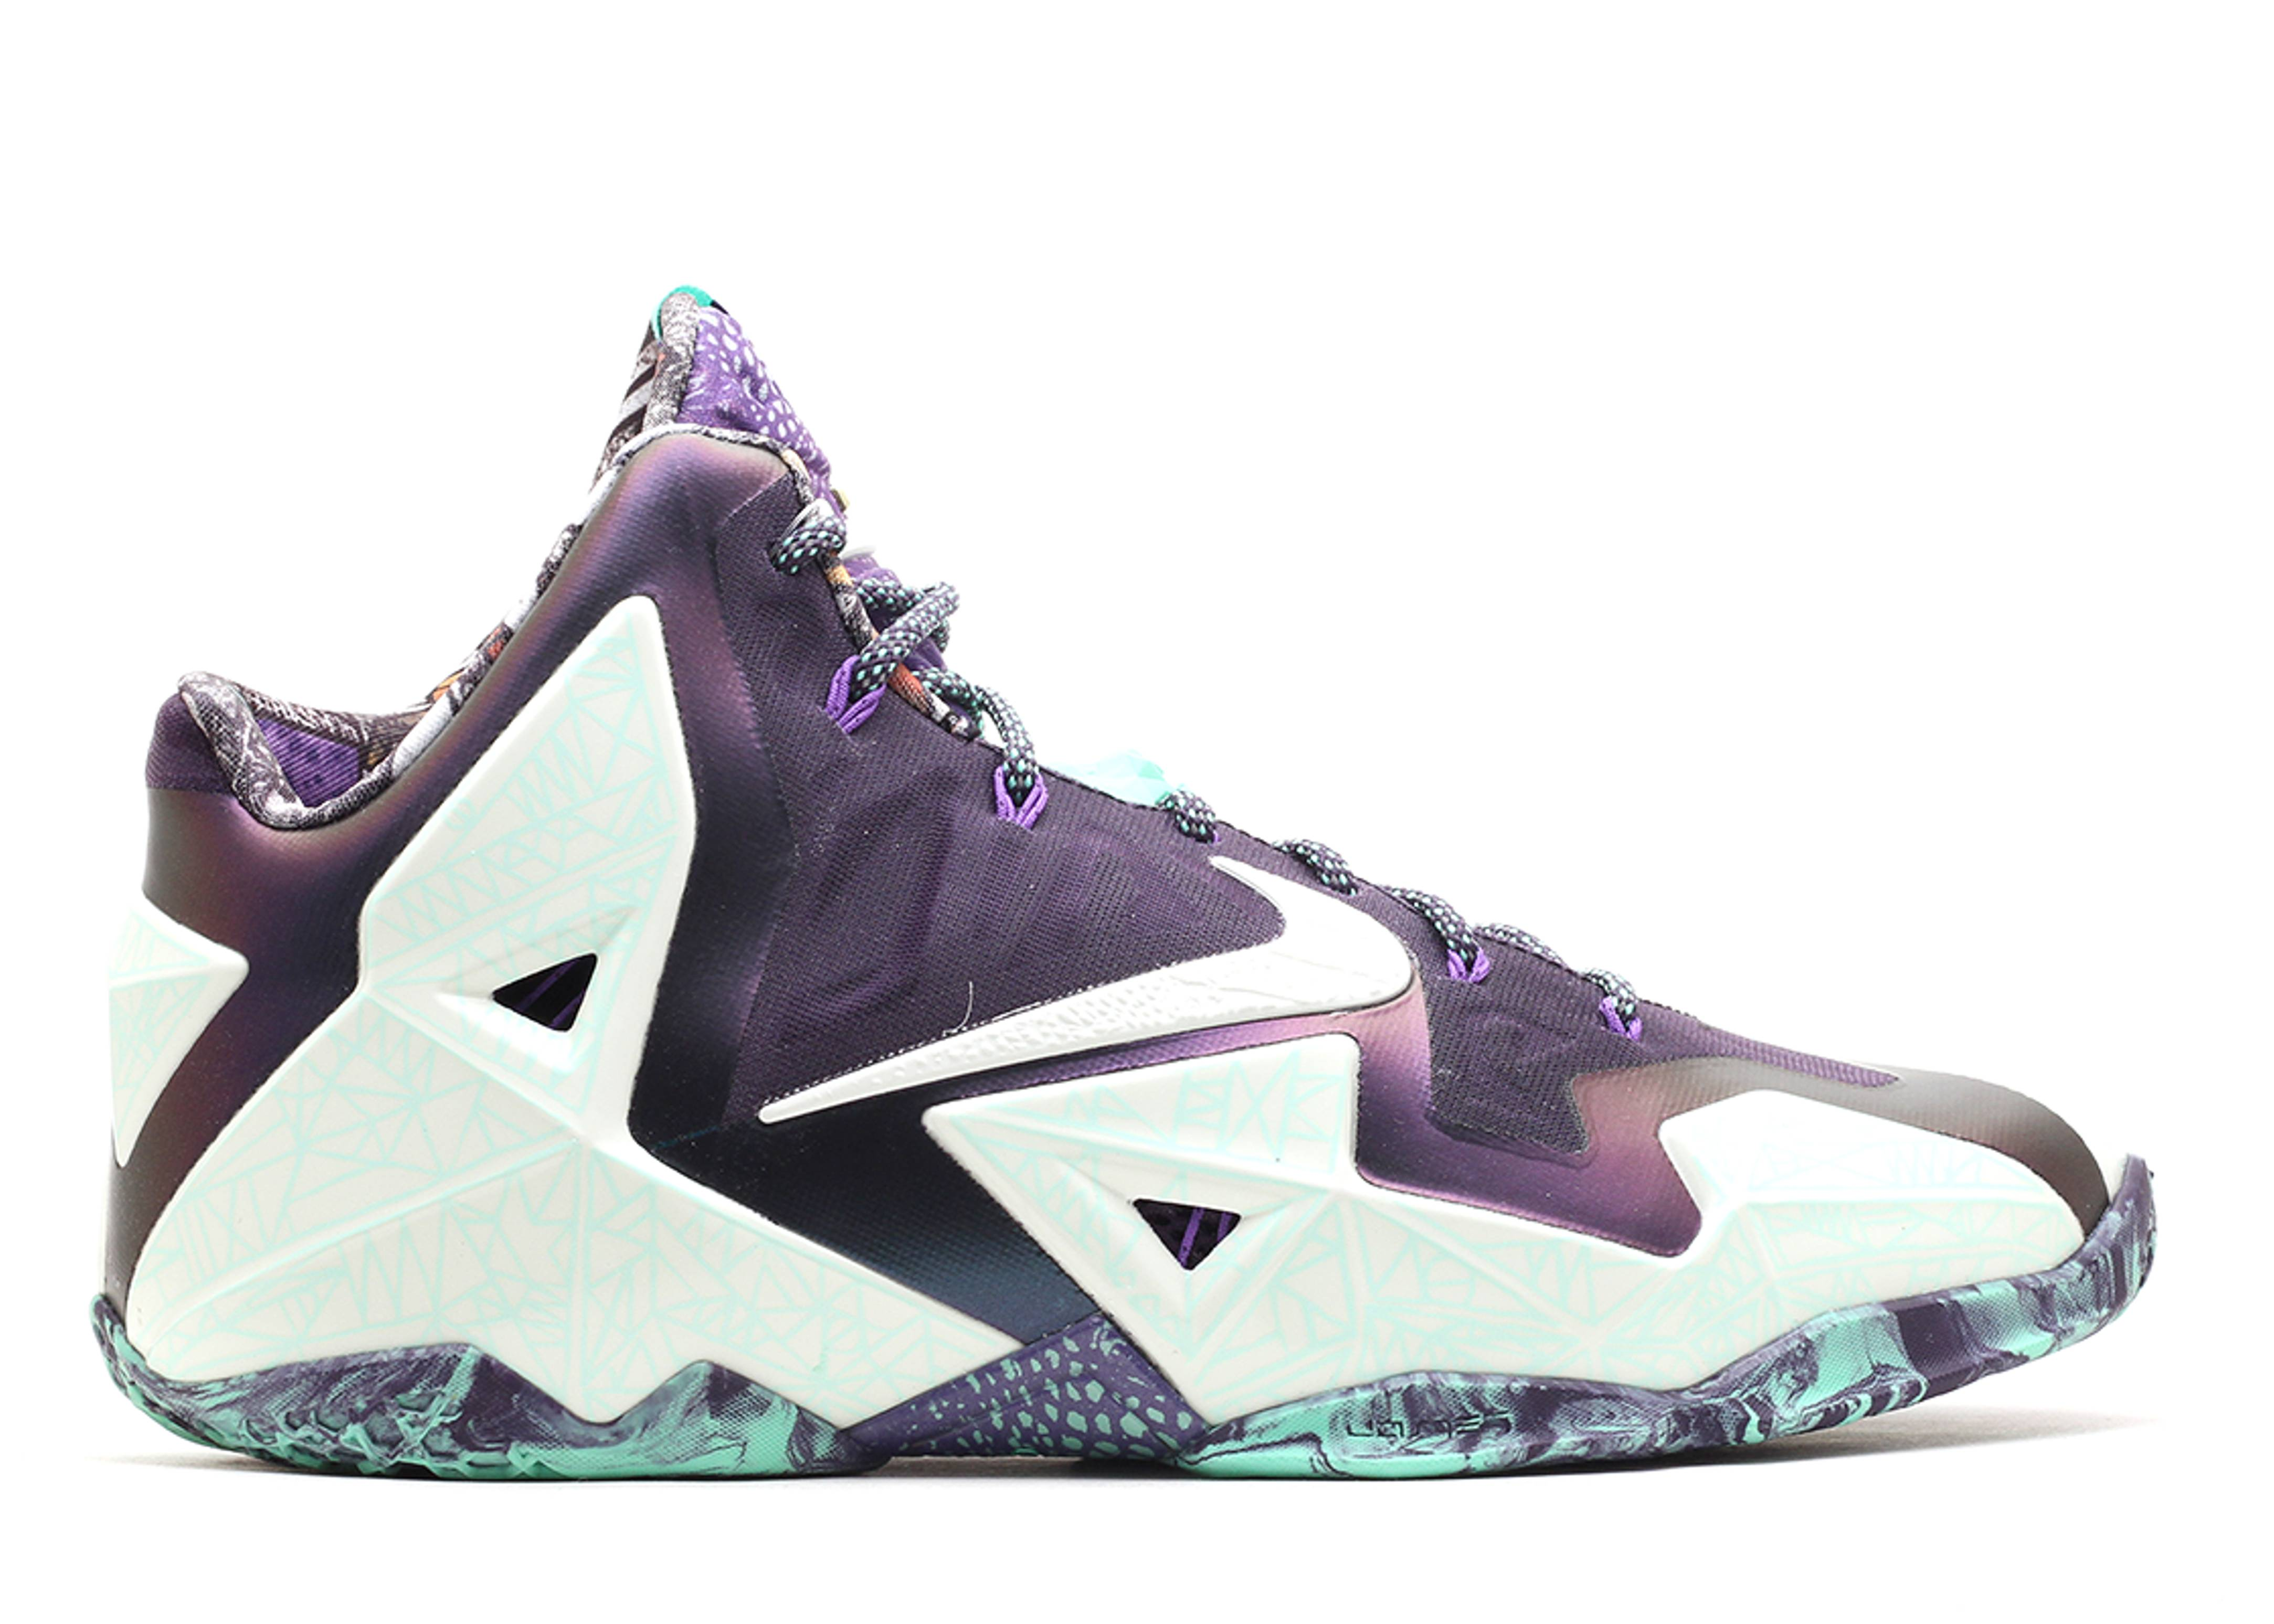 Nike LeBron 11 NOLA Gumbo League \ Sneakers (Cashmere/Green Glow-Purple Dynasty)